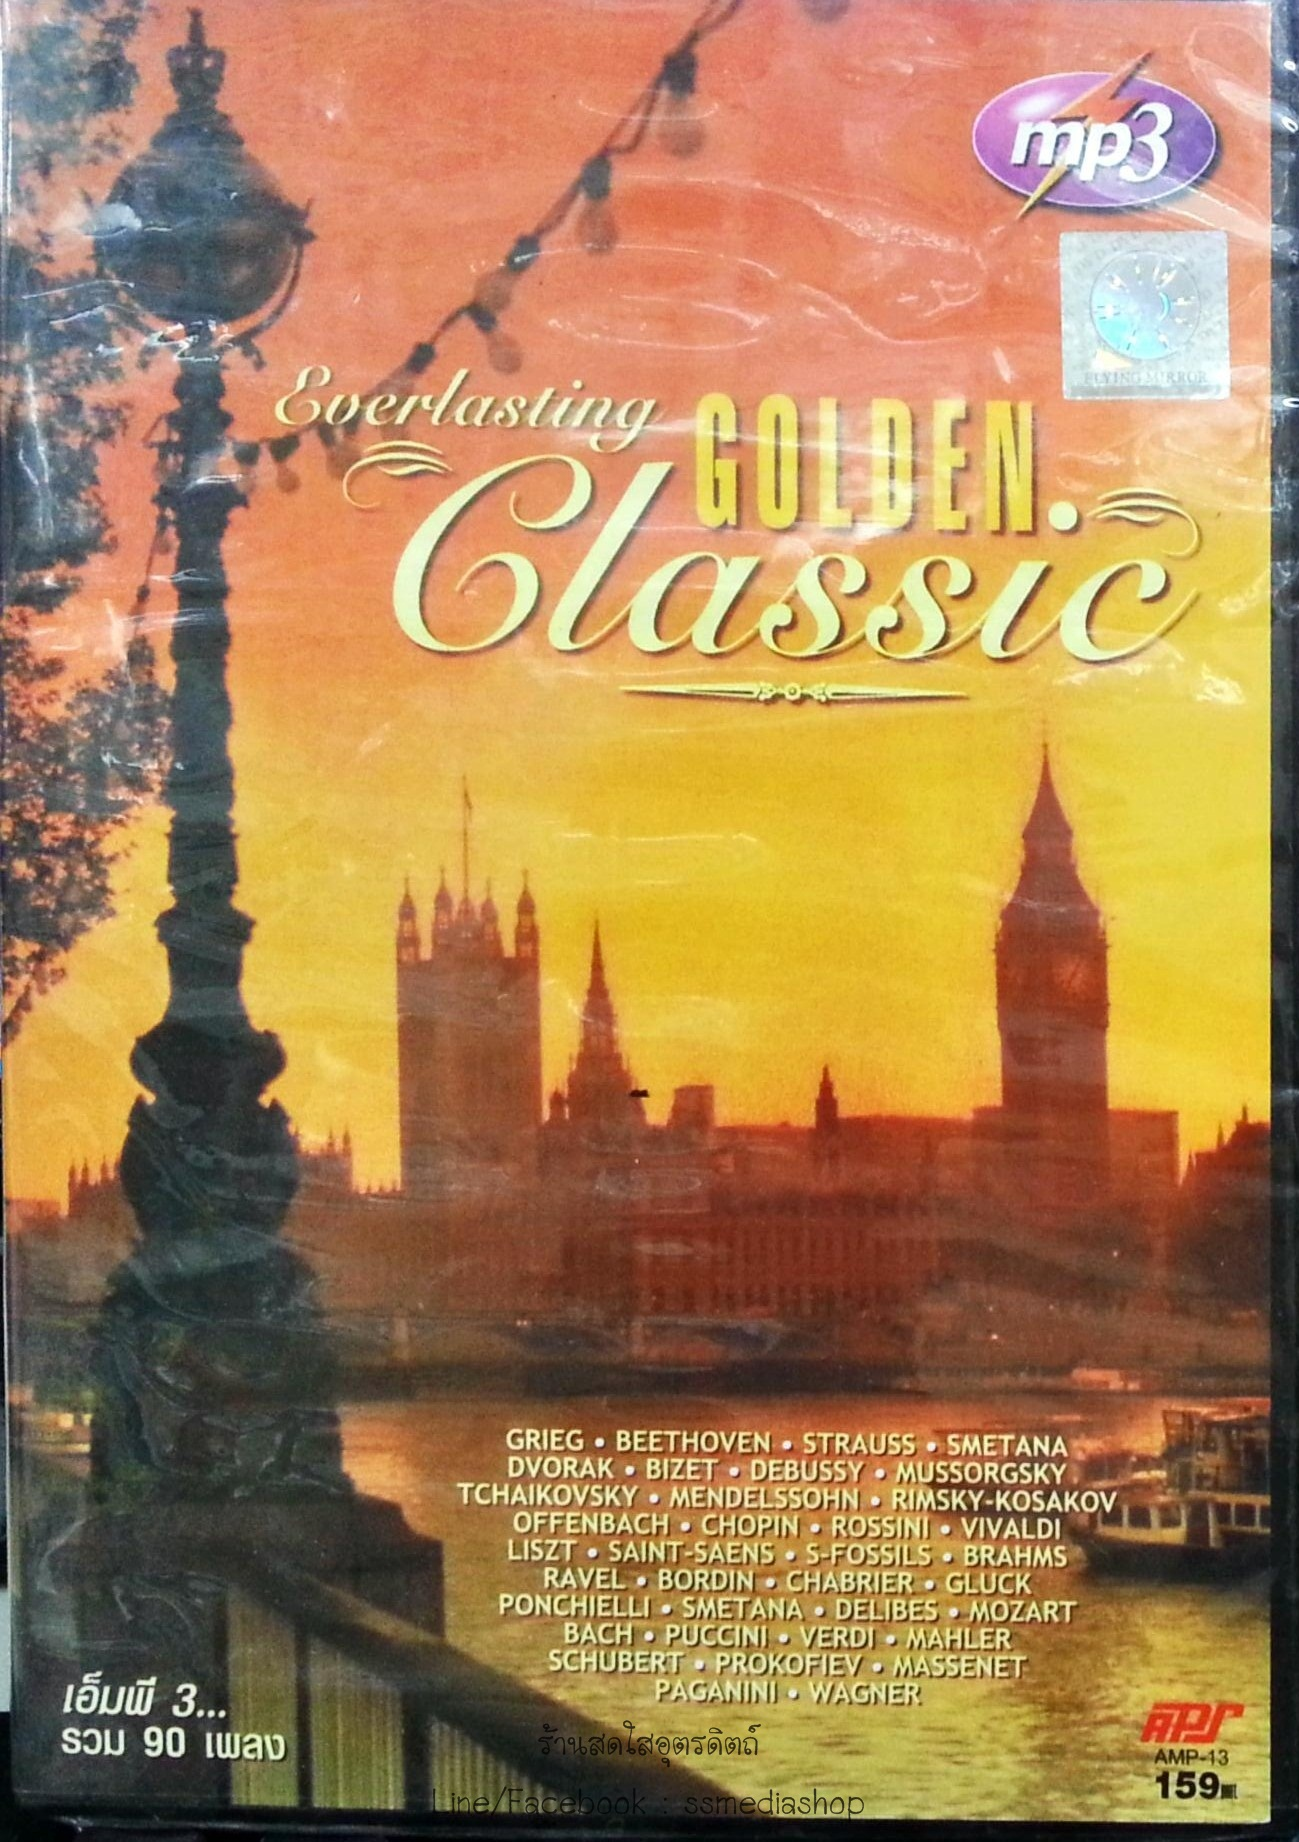 MP3 everlasting golden classic